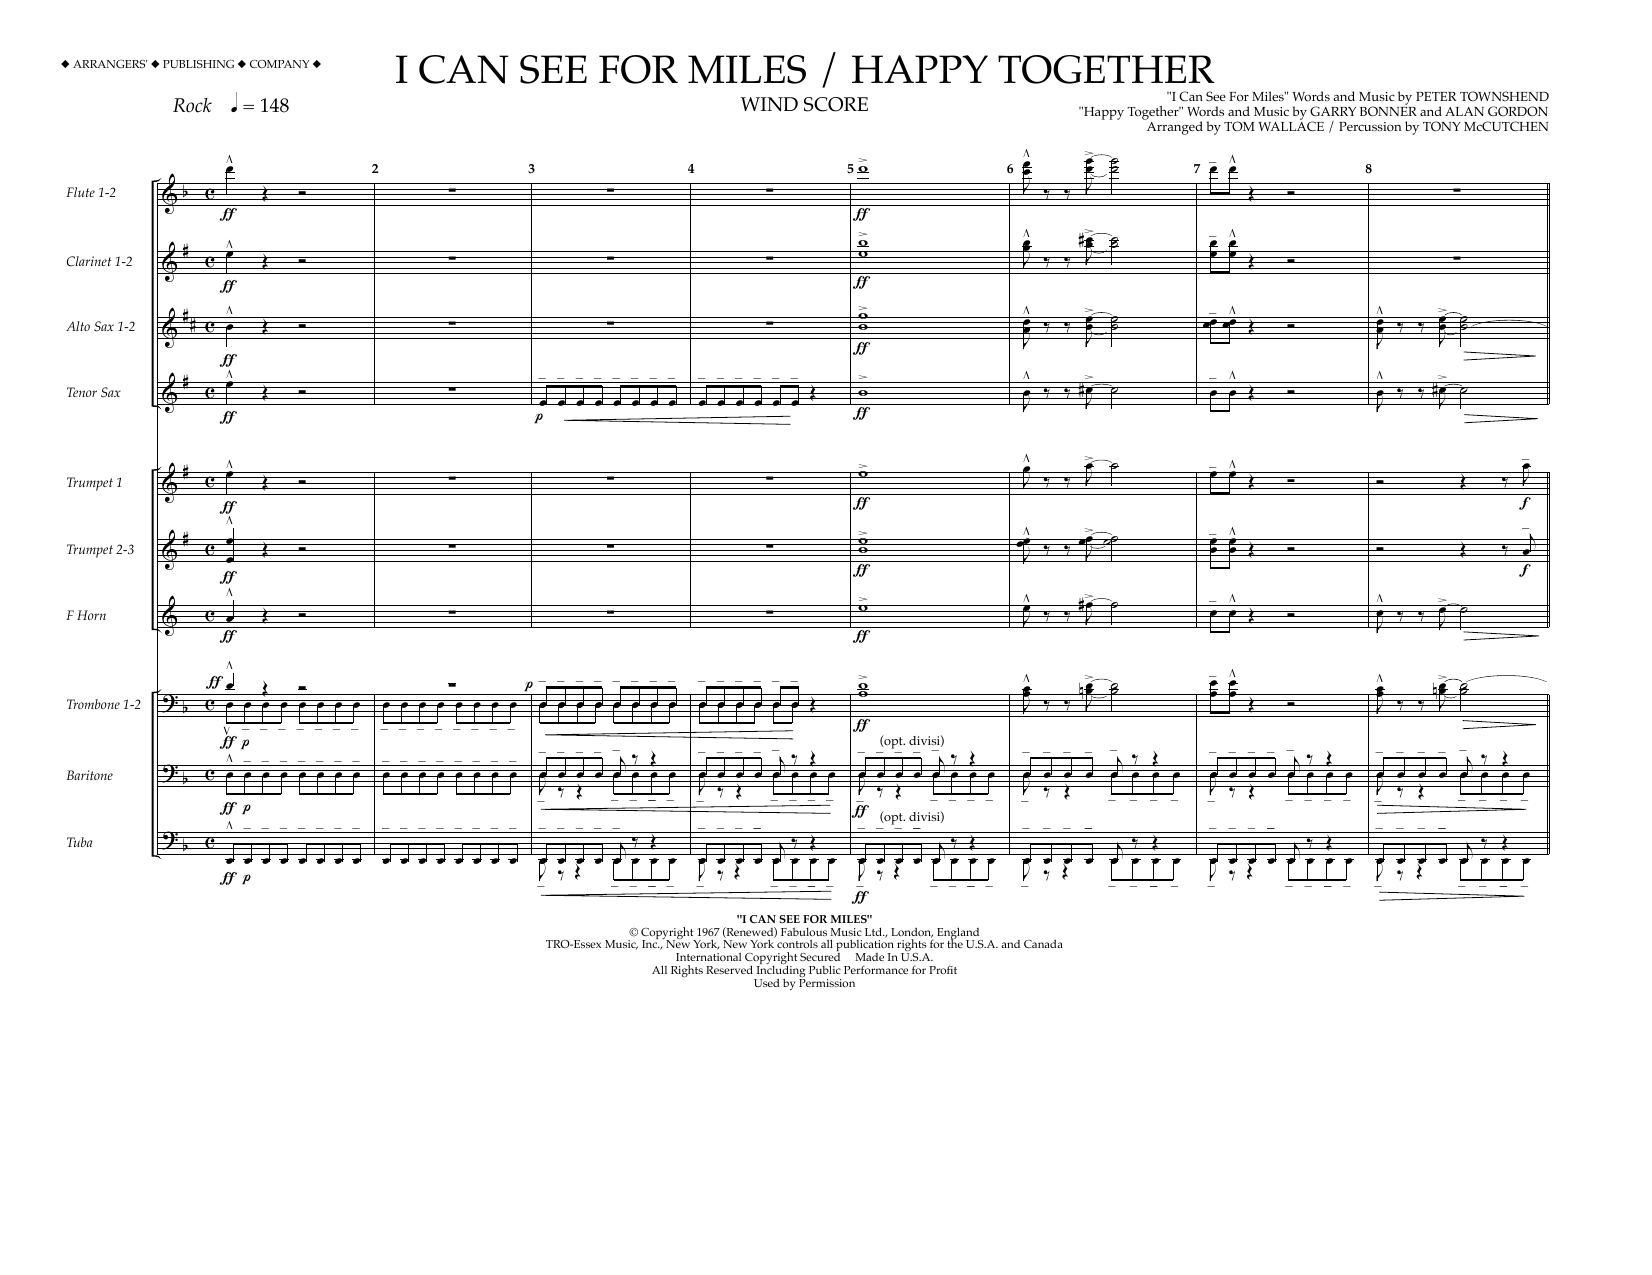 I Can See for Miles/Happy Together - Wind Score Sheet Music